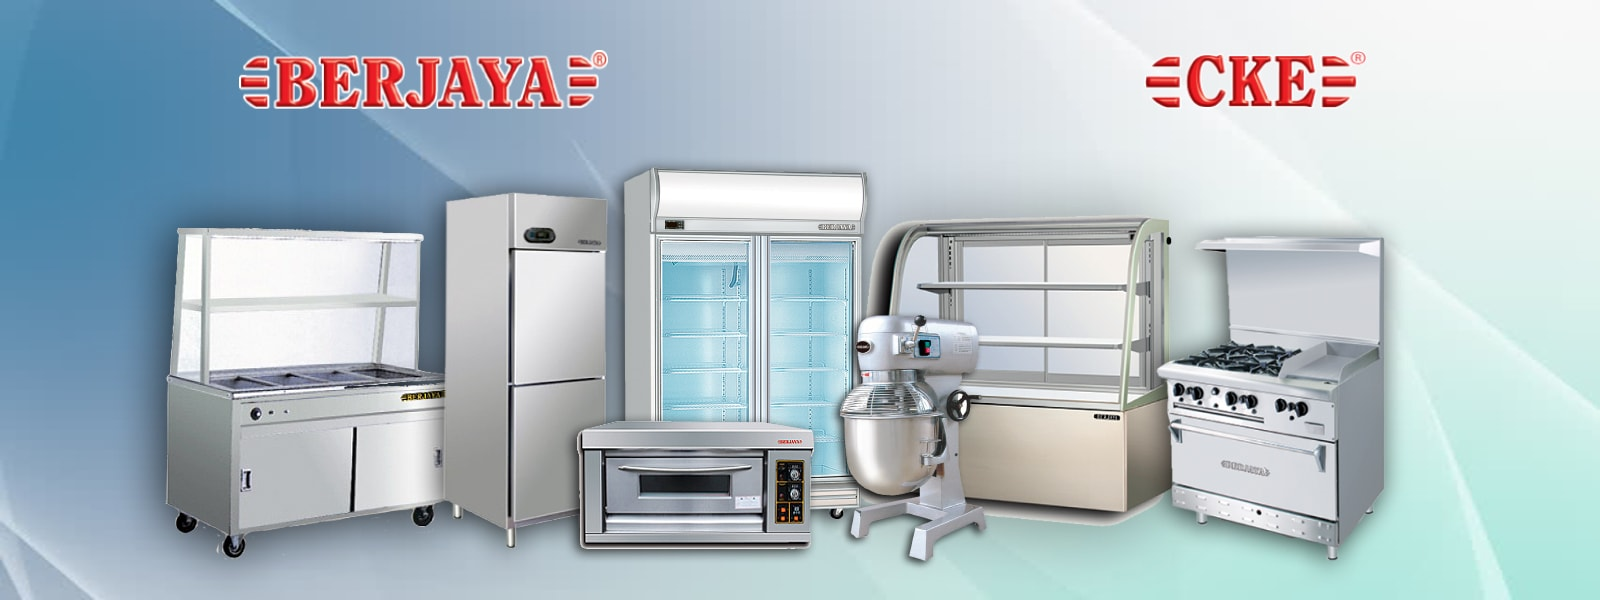 Leasing Kitchen Equipment Malaysia - Kitchen Appliances Tips And Review